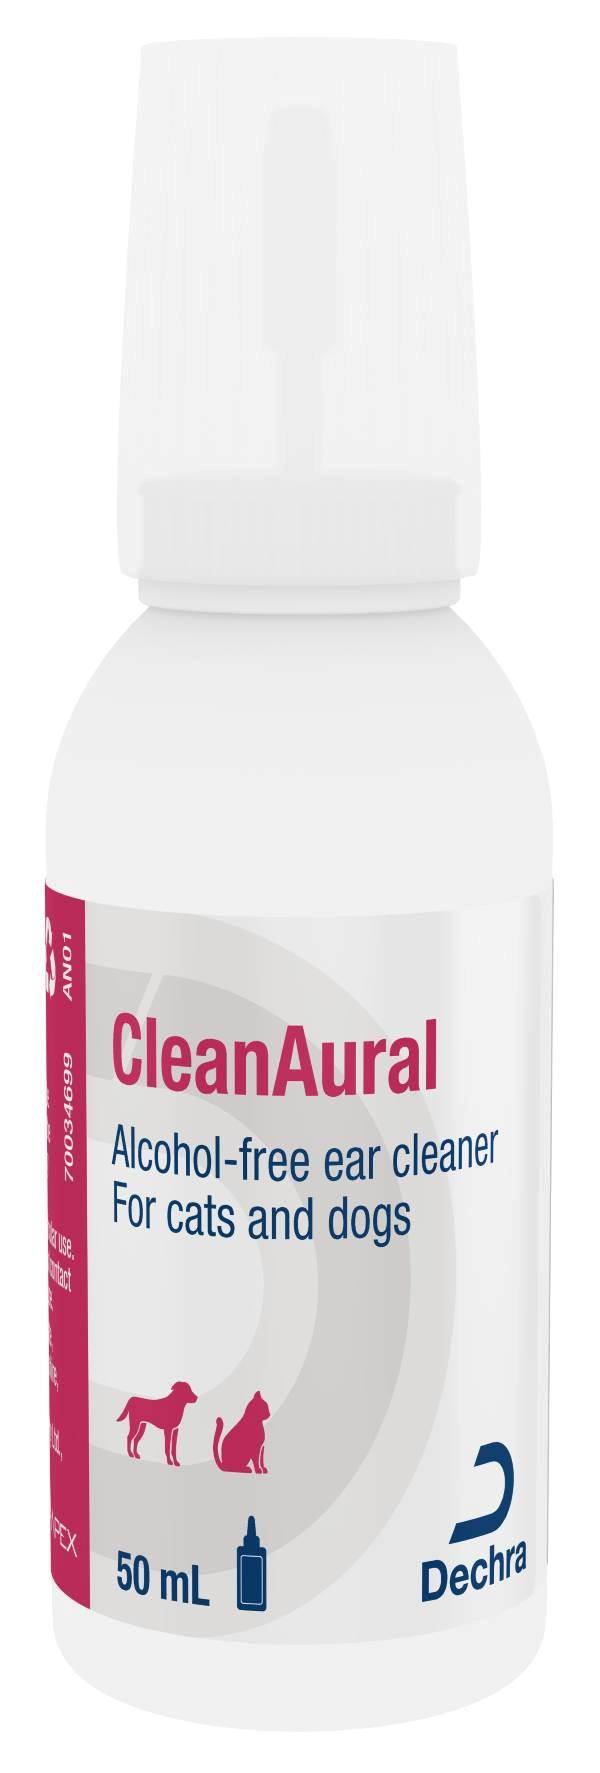 Alcohol-free ear cleaner (50mL)